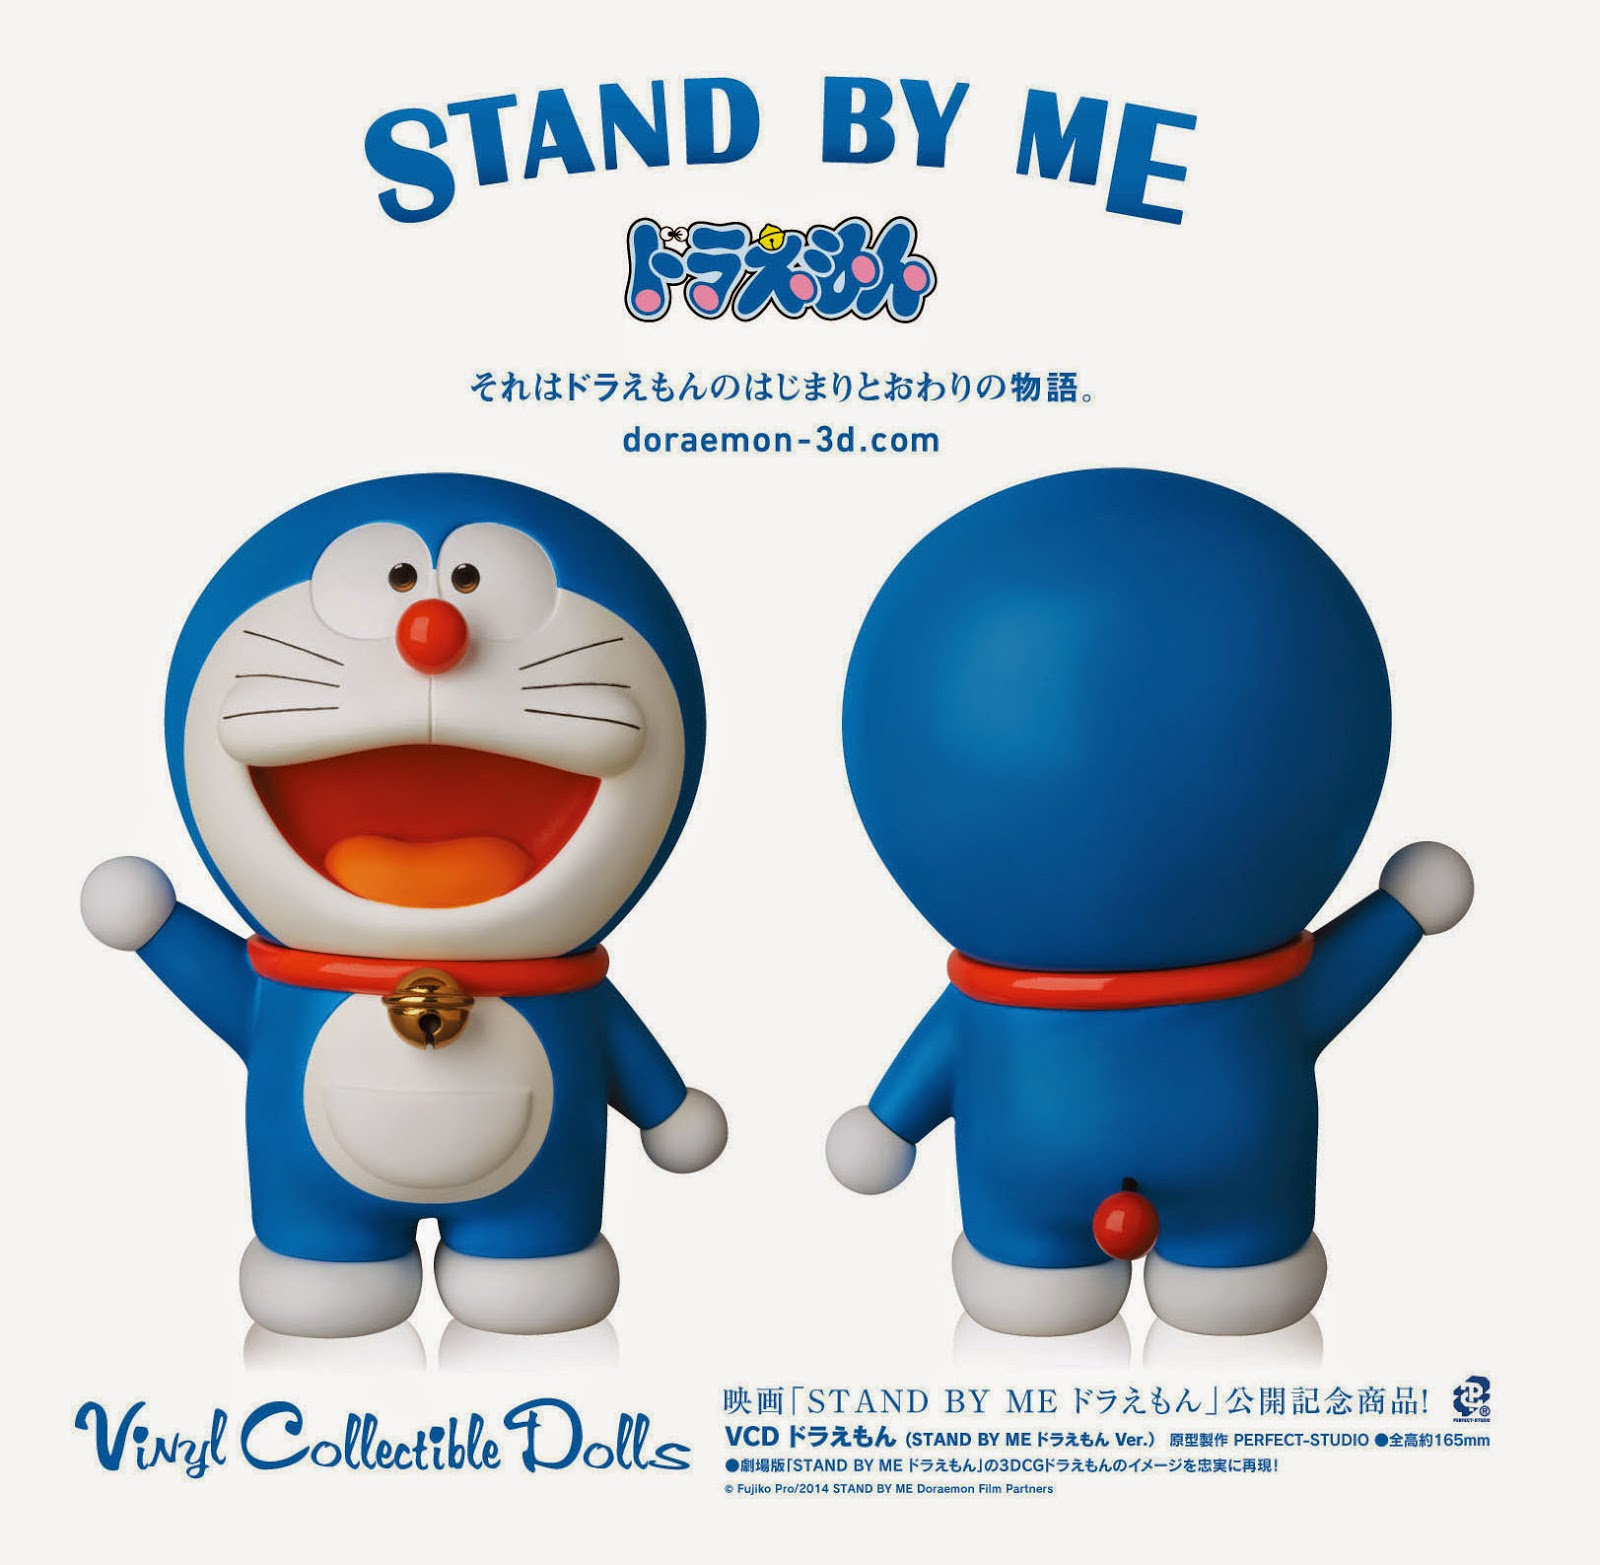 Stand by Me doraemon download 720p